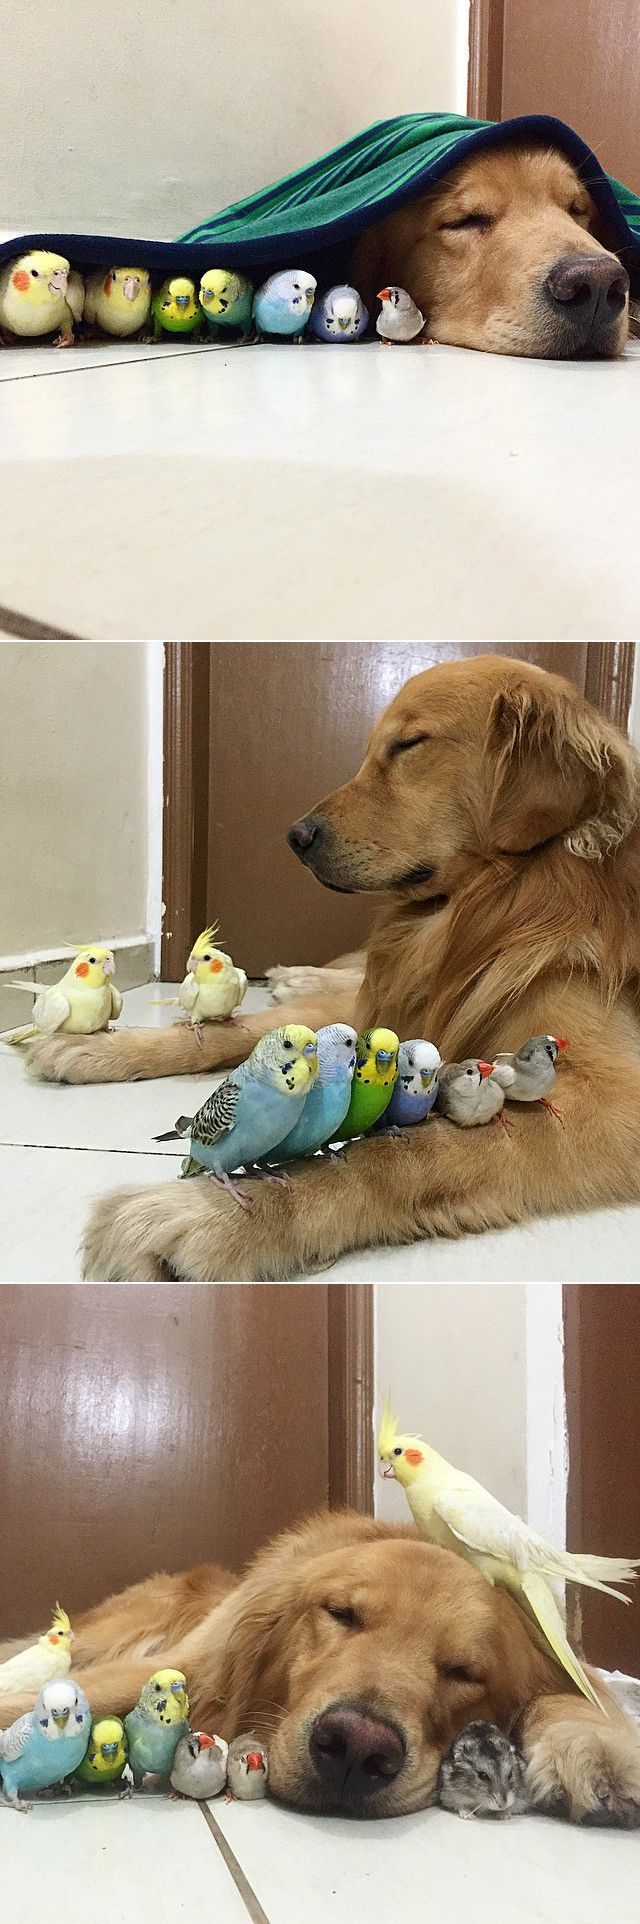 A Dog, 8 Birds And A Hamster Are The Most Unusual Best Friends Ever                                                                                                                                                      More